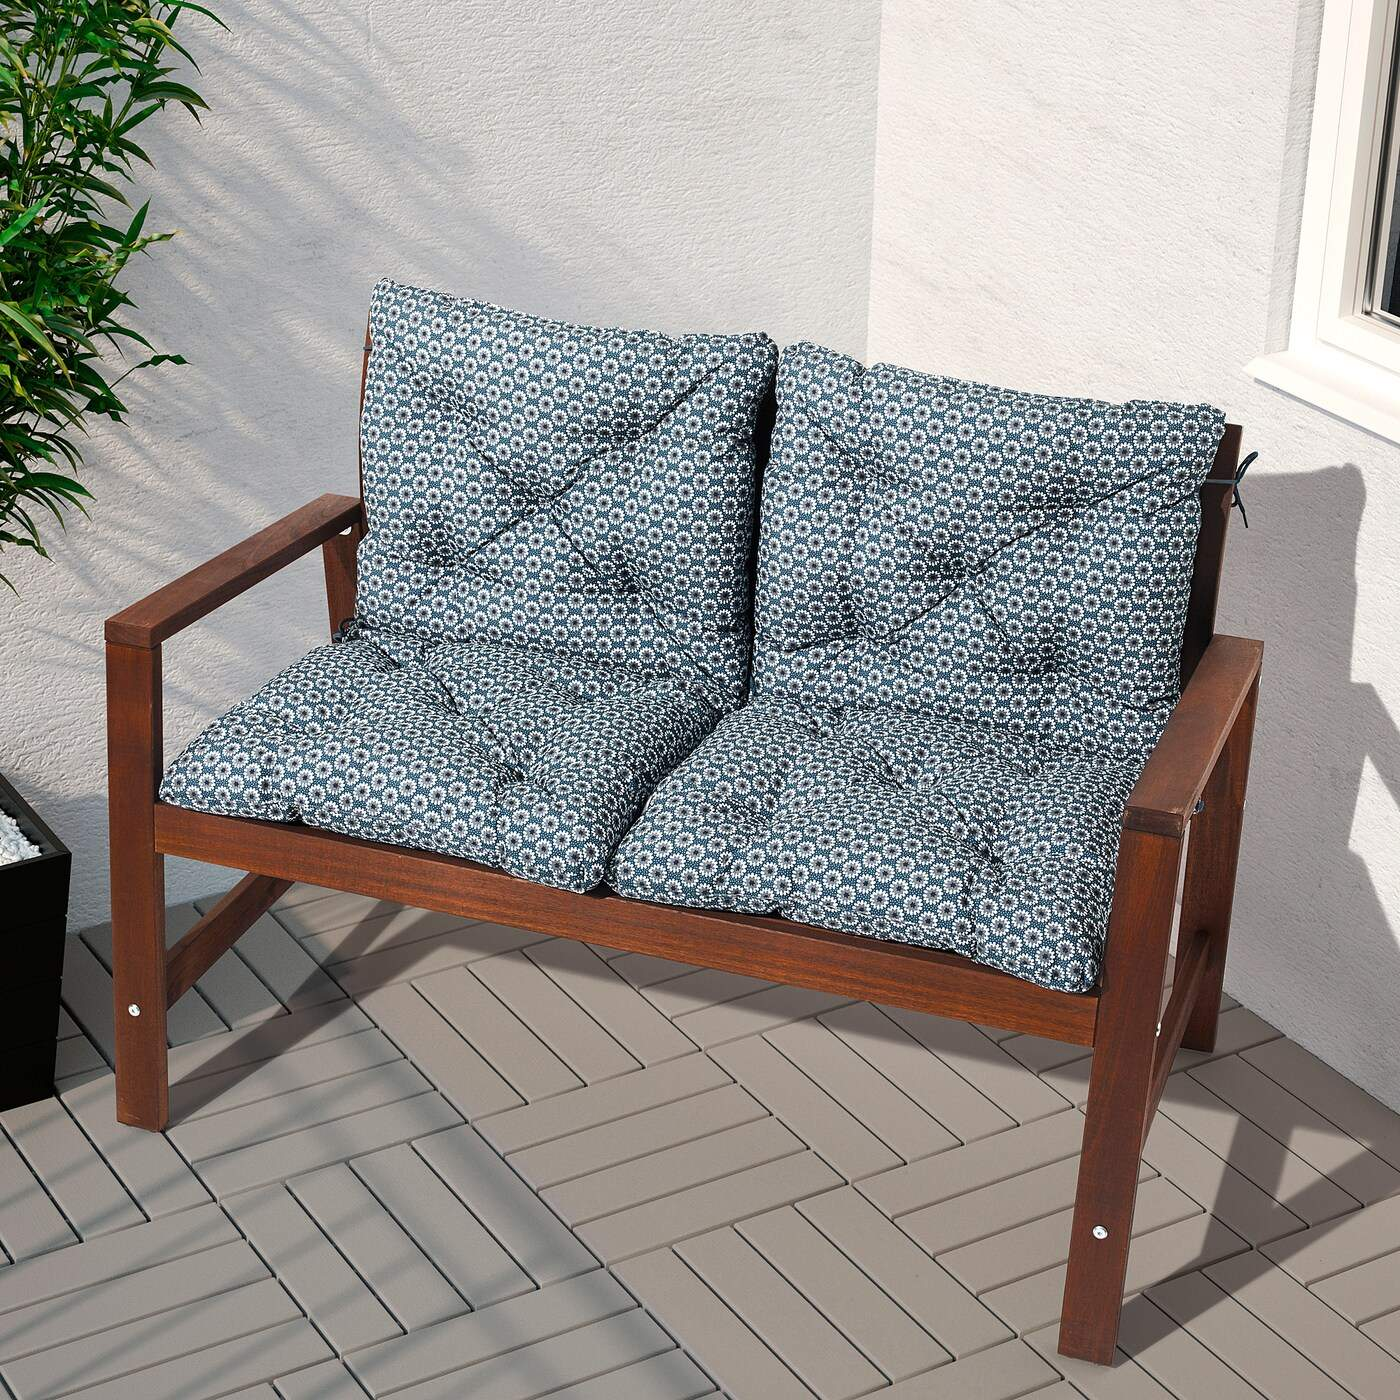 aepplaroe bench with backrest outdoor brown stained PE S5 JPG